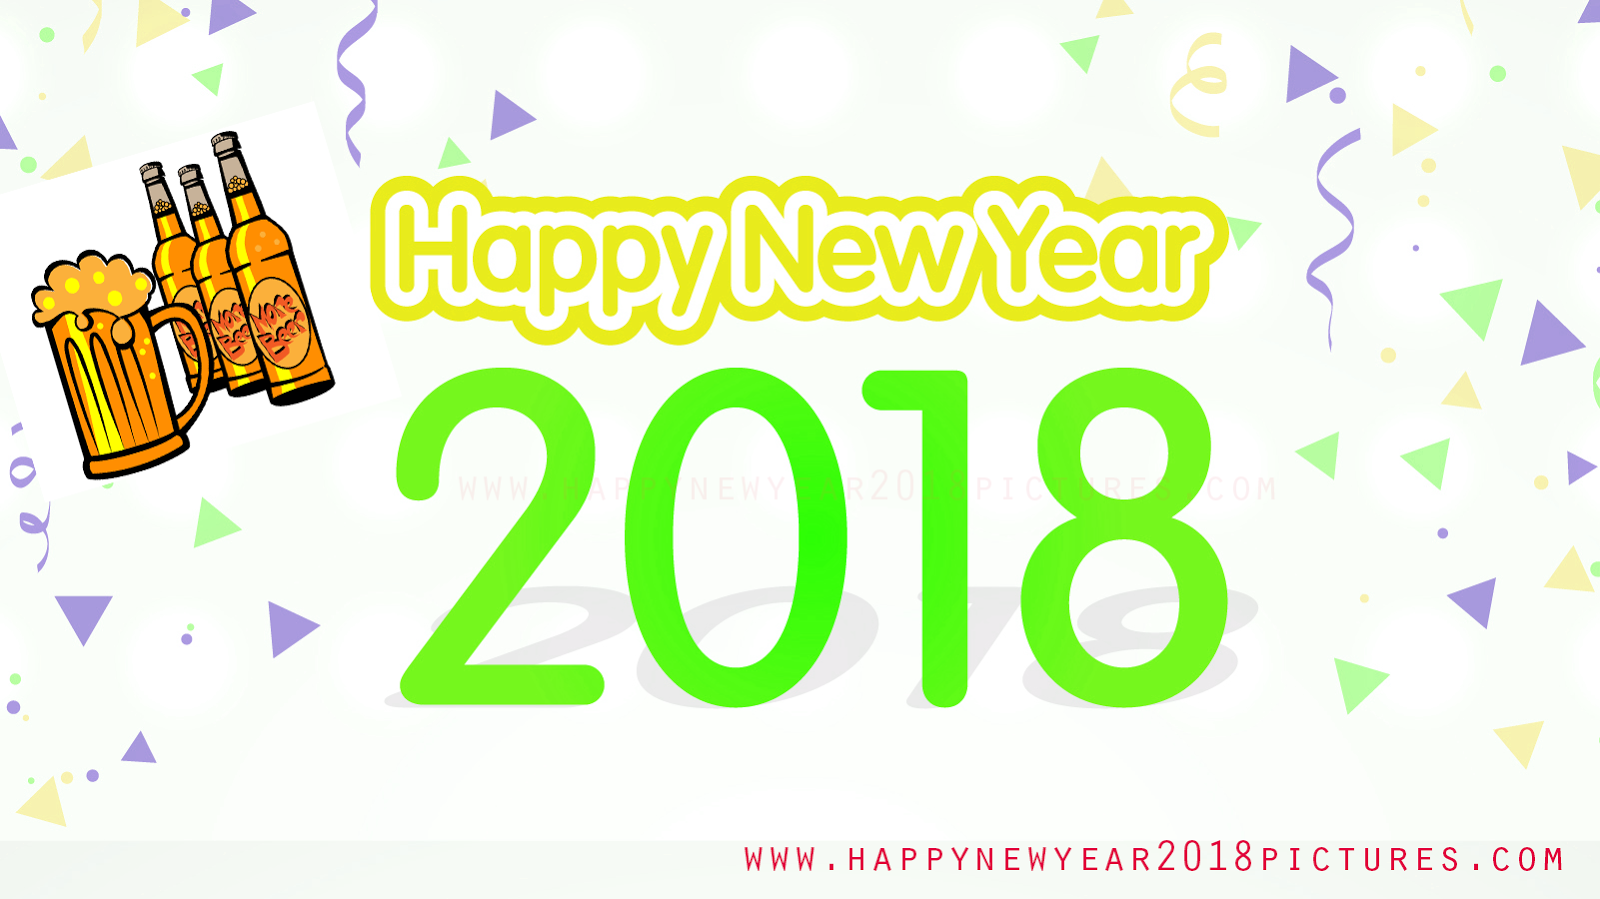 Happy New Year Best 2018 3d Animated Images Greetings Wallpaper